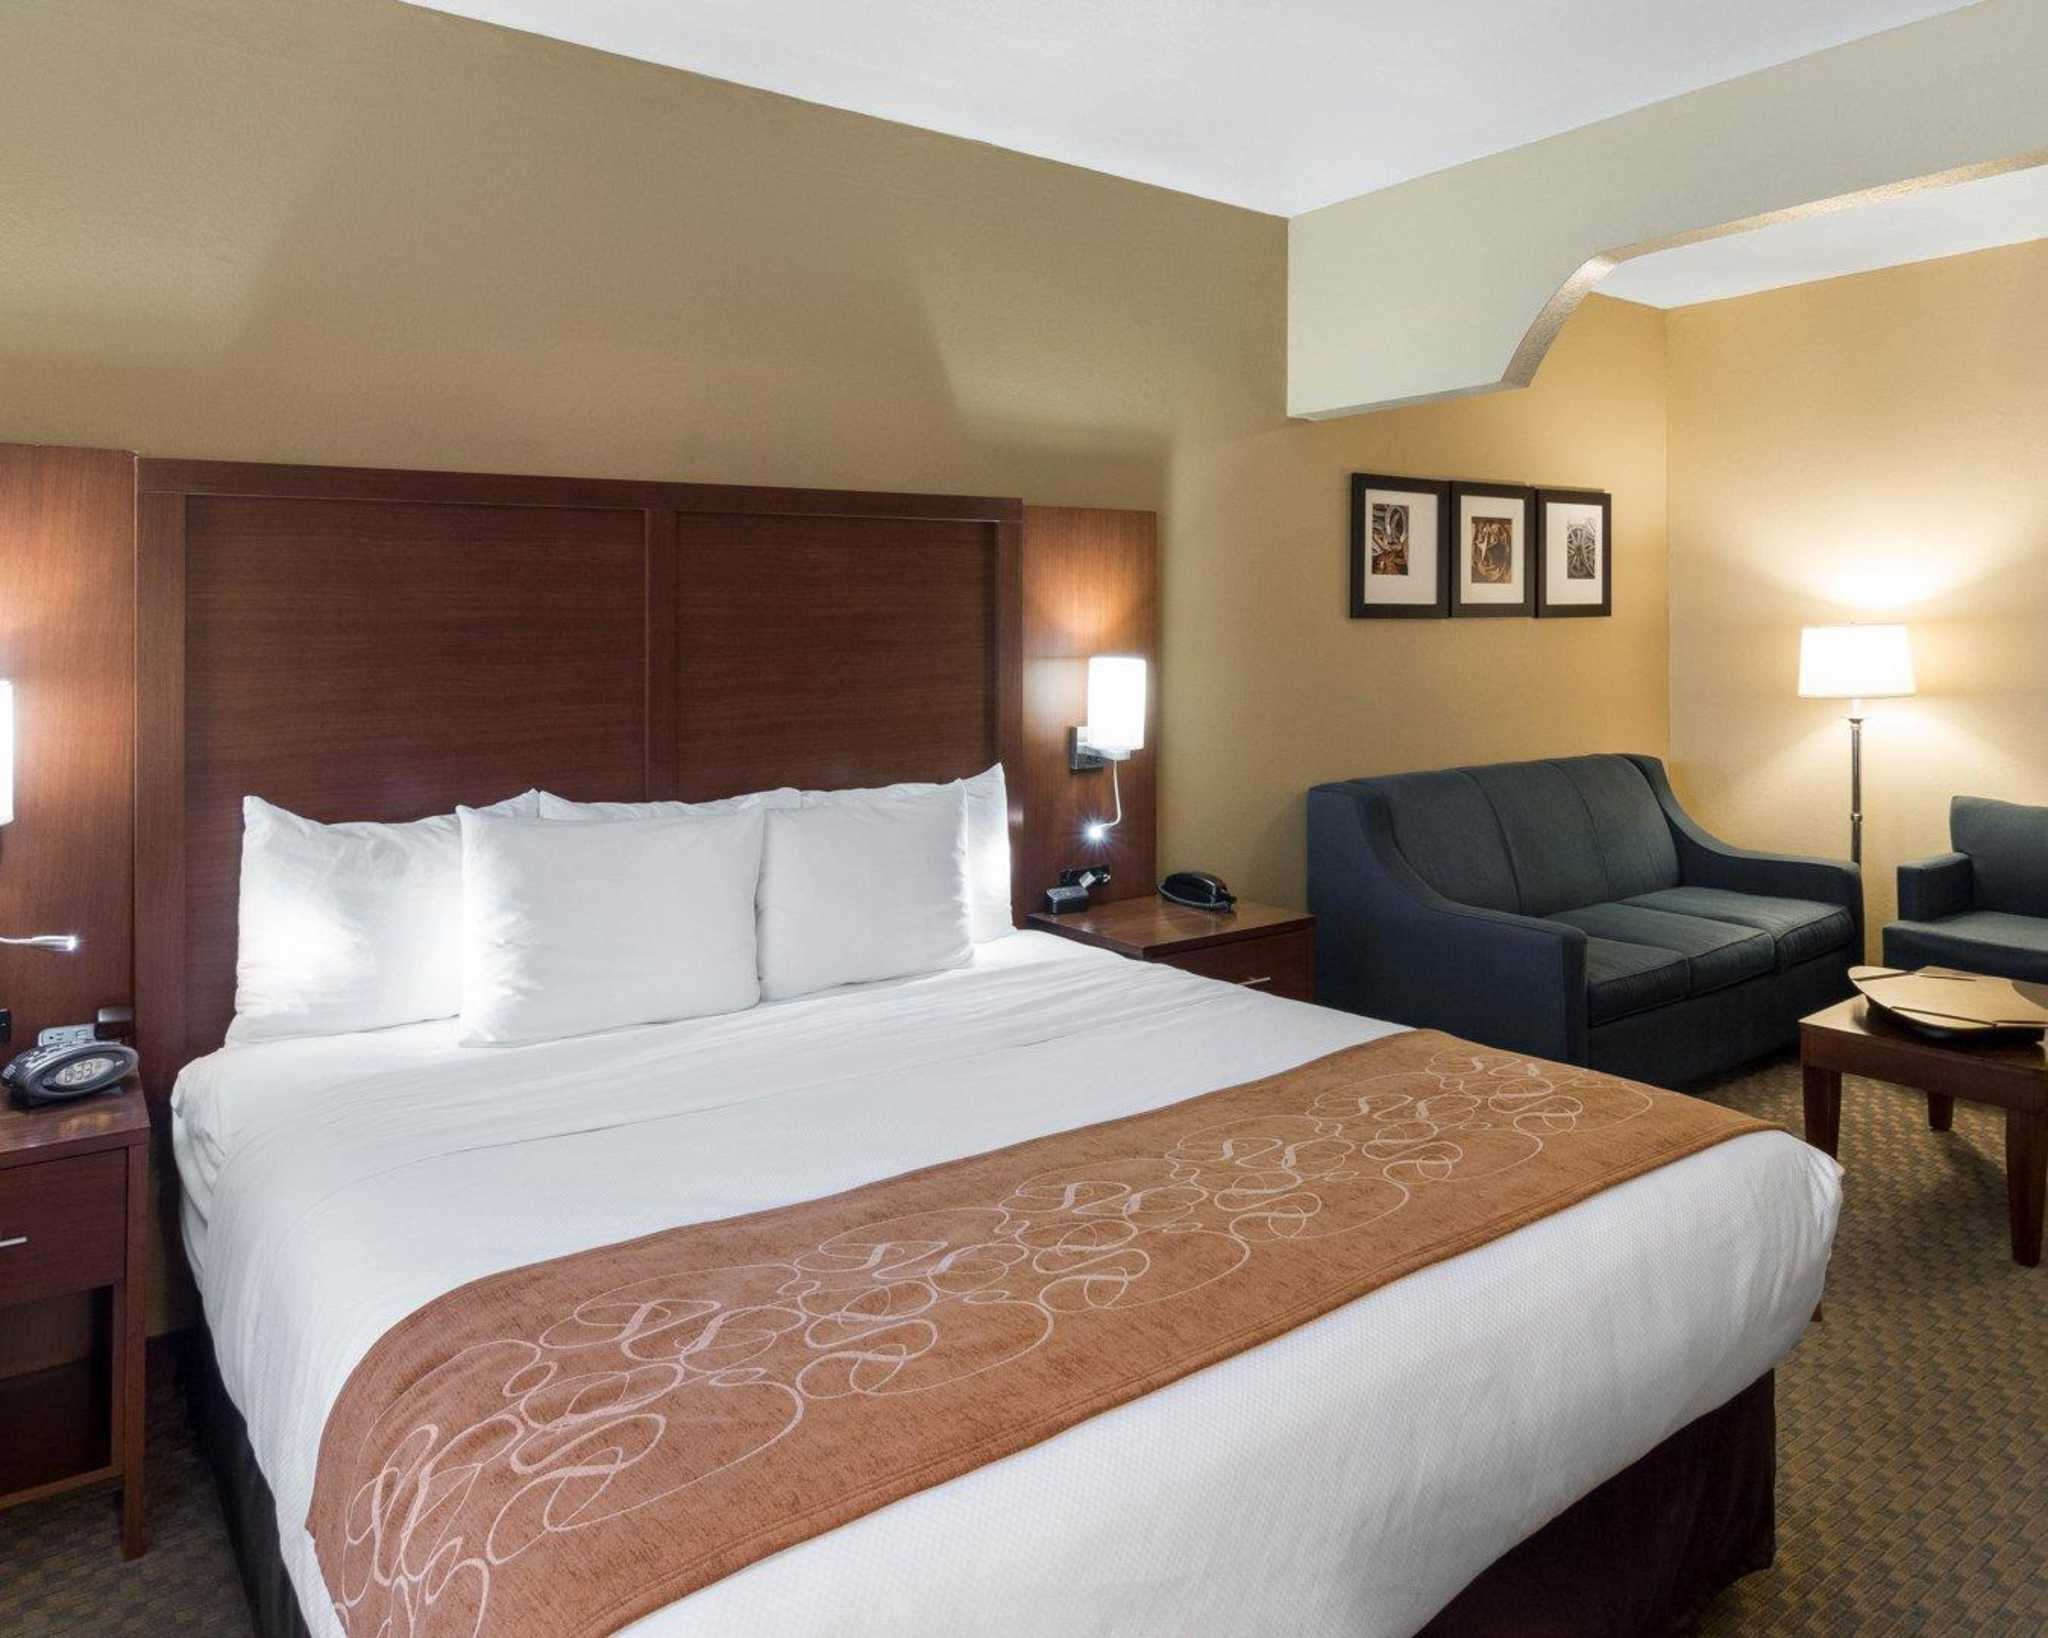 Quality Suites Coupons Near Me In Midland 8coupons